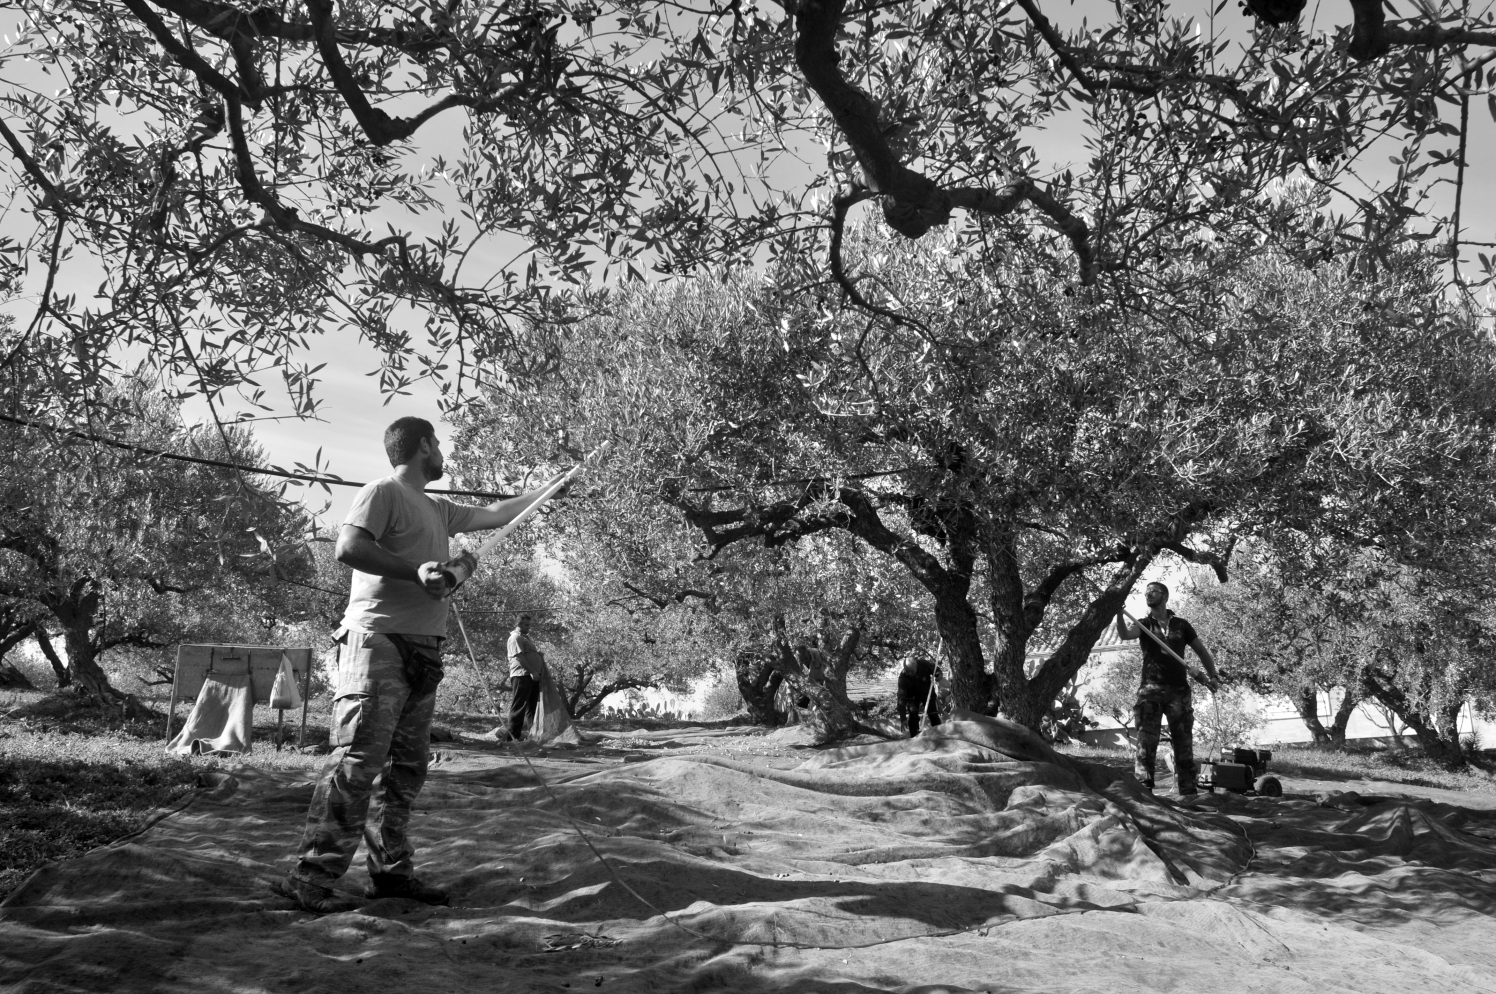 And the work goes on under the long olive branches